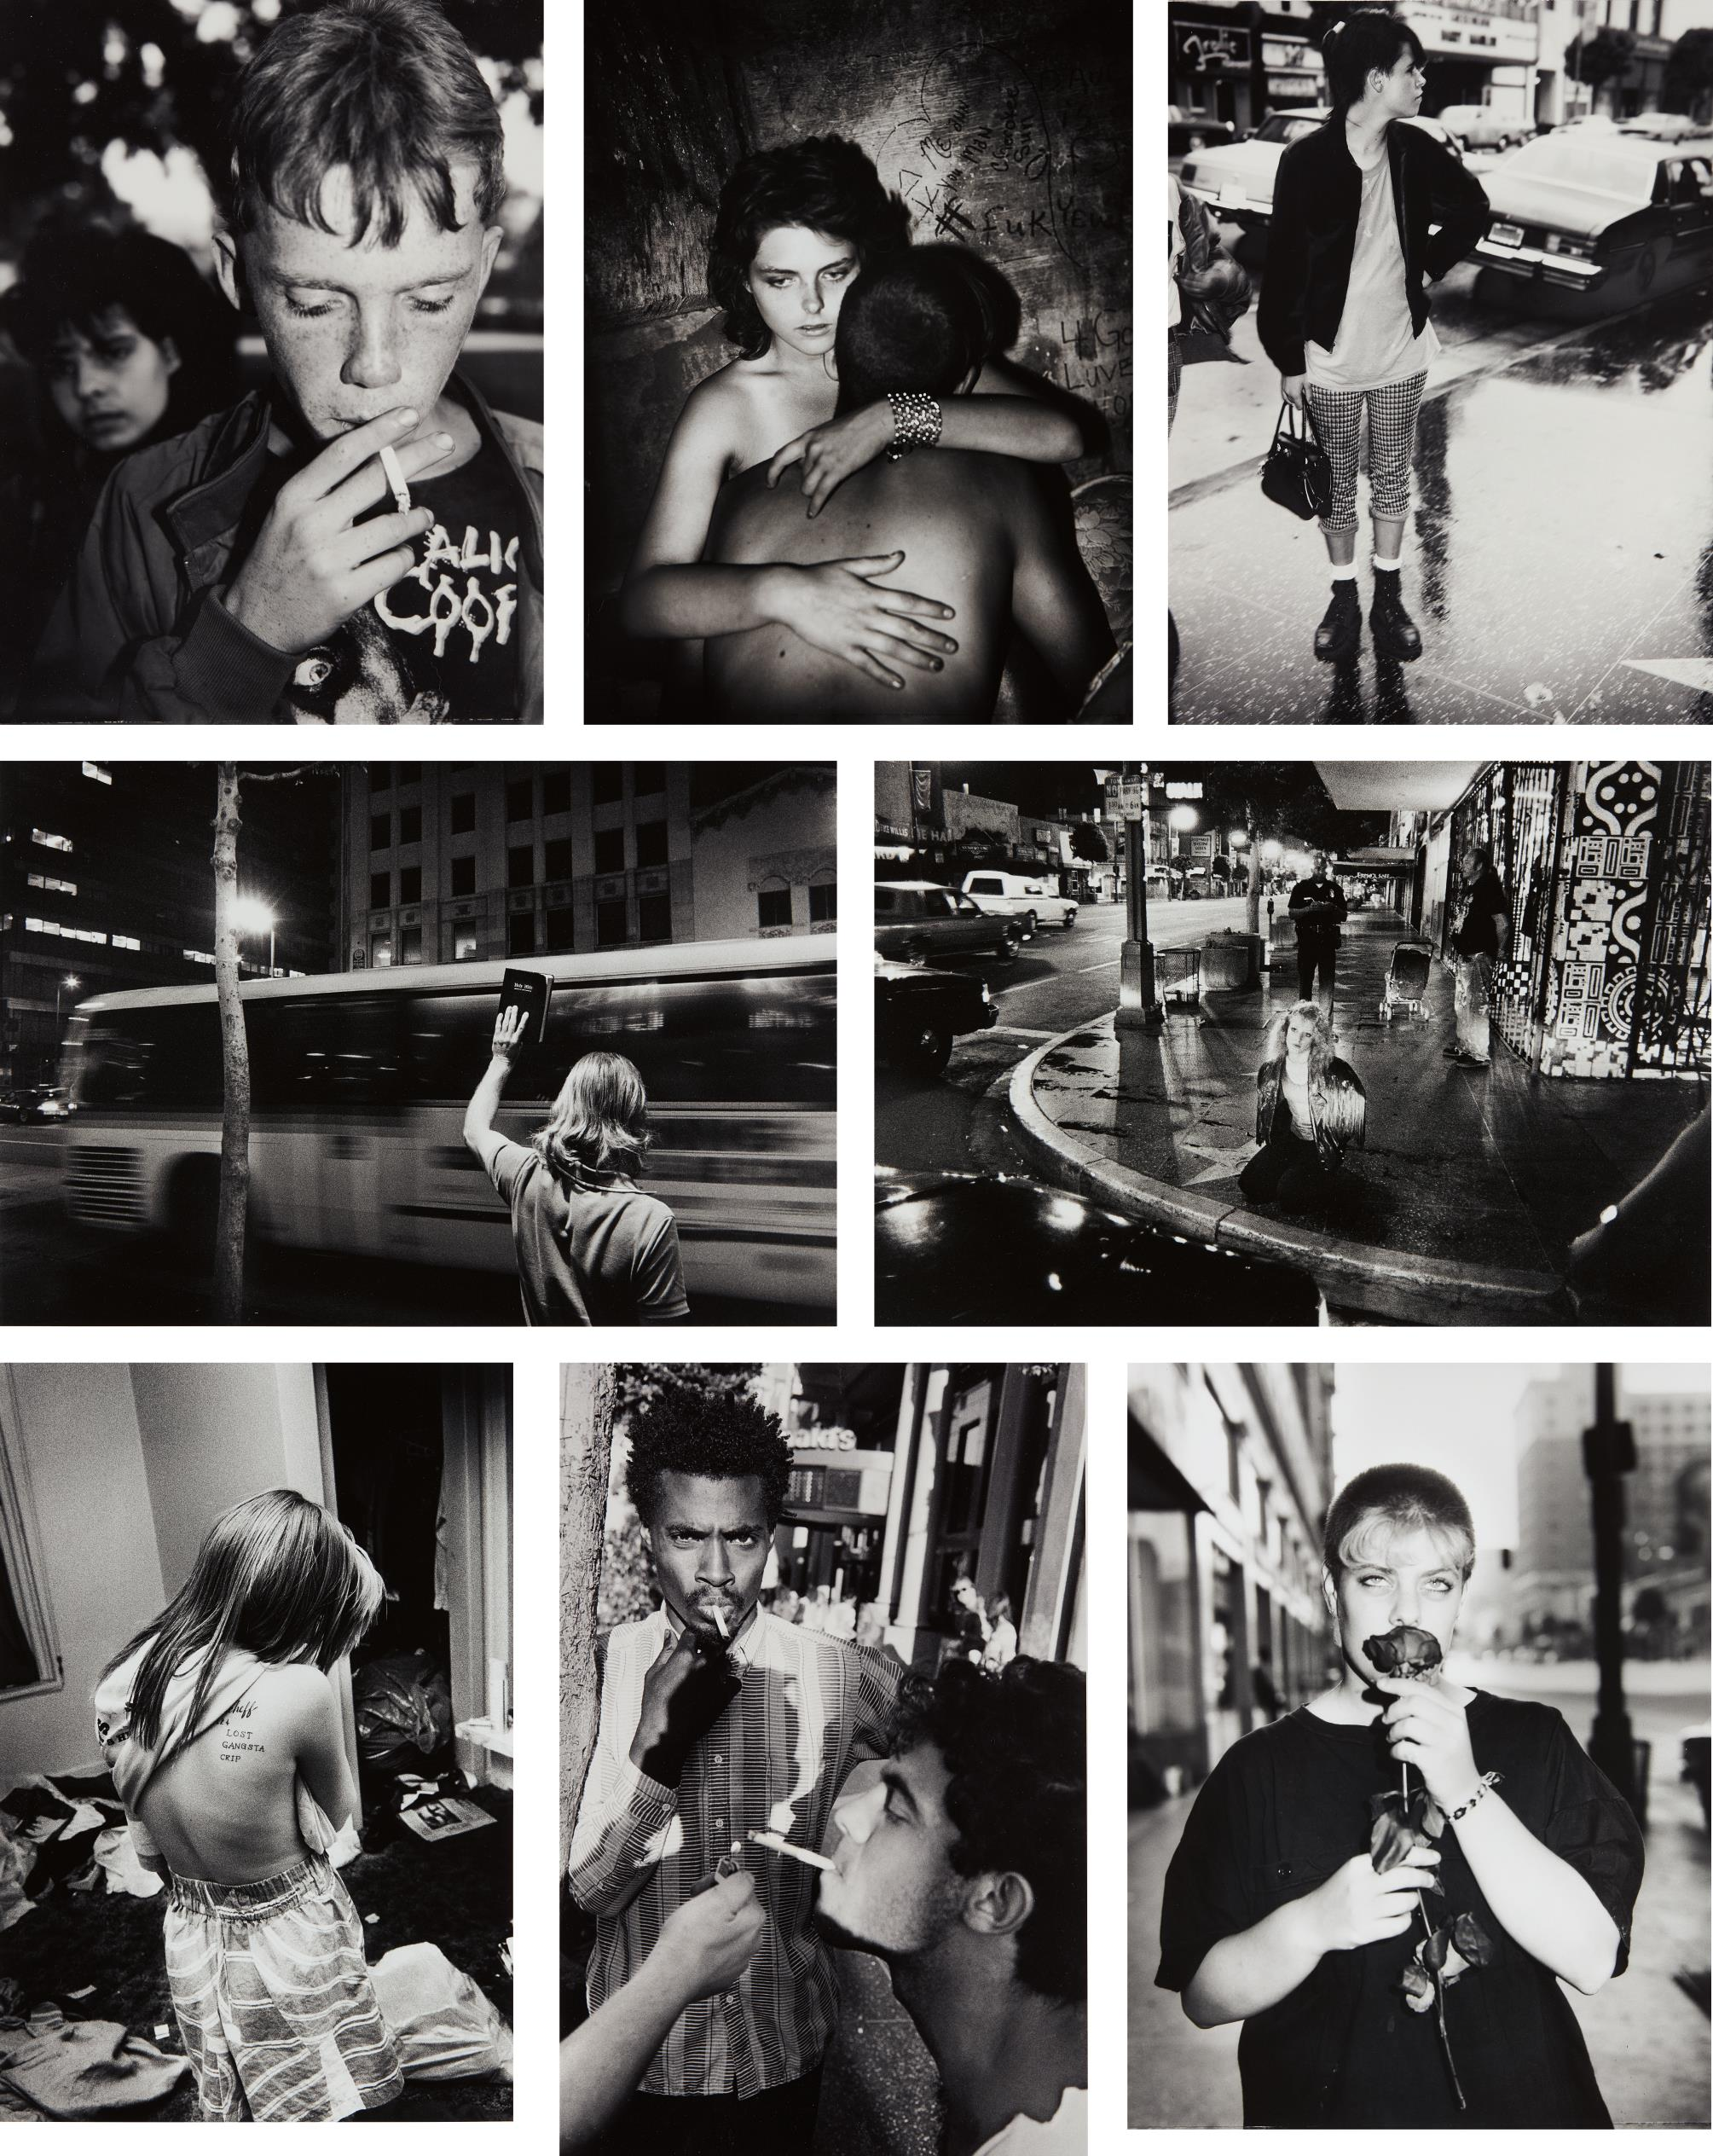 Jim Goldberg-Selected Images from Raised by Wolves-1991